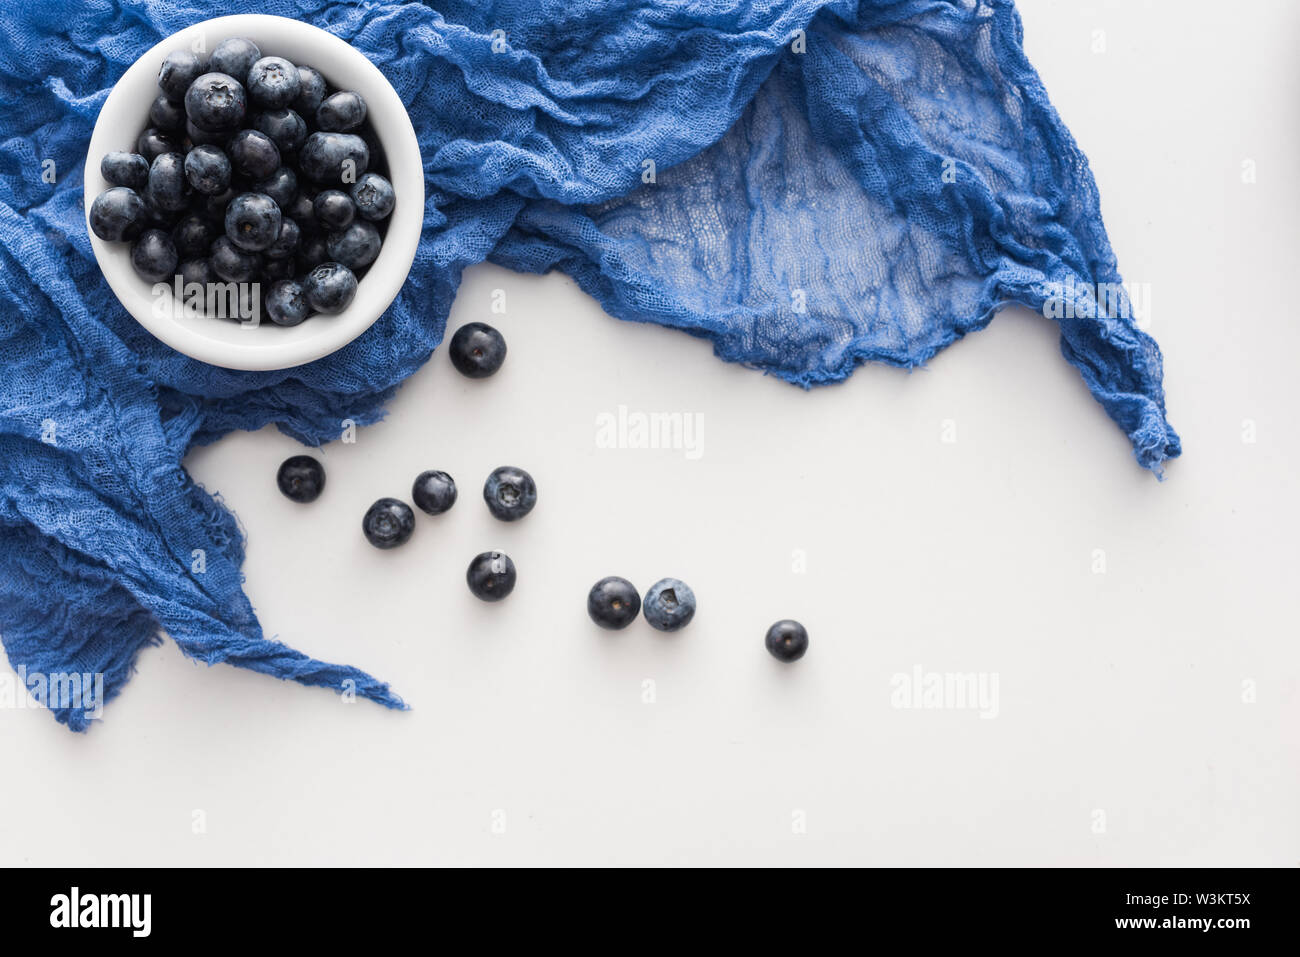 Top View Of Sweet Blueberries On Blue Bowl With Blue Cloth Stock